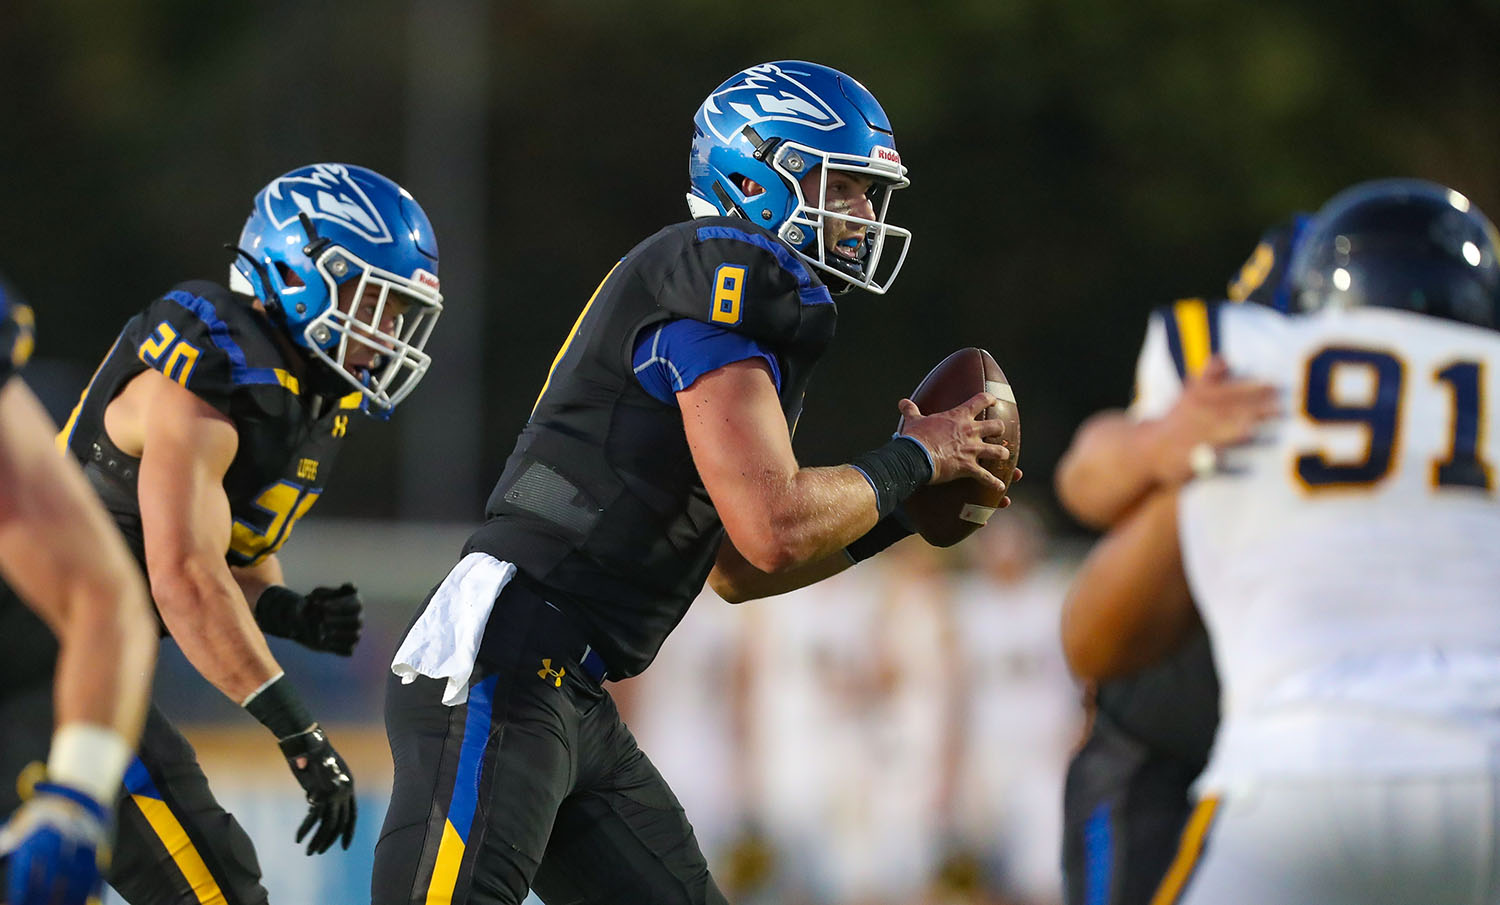 """""""I could name about 40 different dudes who were a big reason why I wanted to stay,"""" fifth-year senior Alex McGinnis said. """"There's definitely a correlation between our success and the type of people who are in the program."""" (UNK Communications)"""